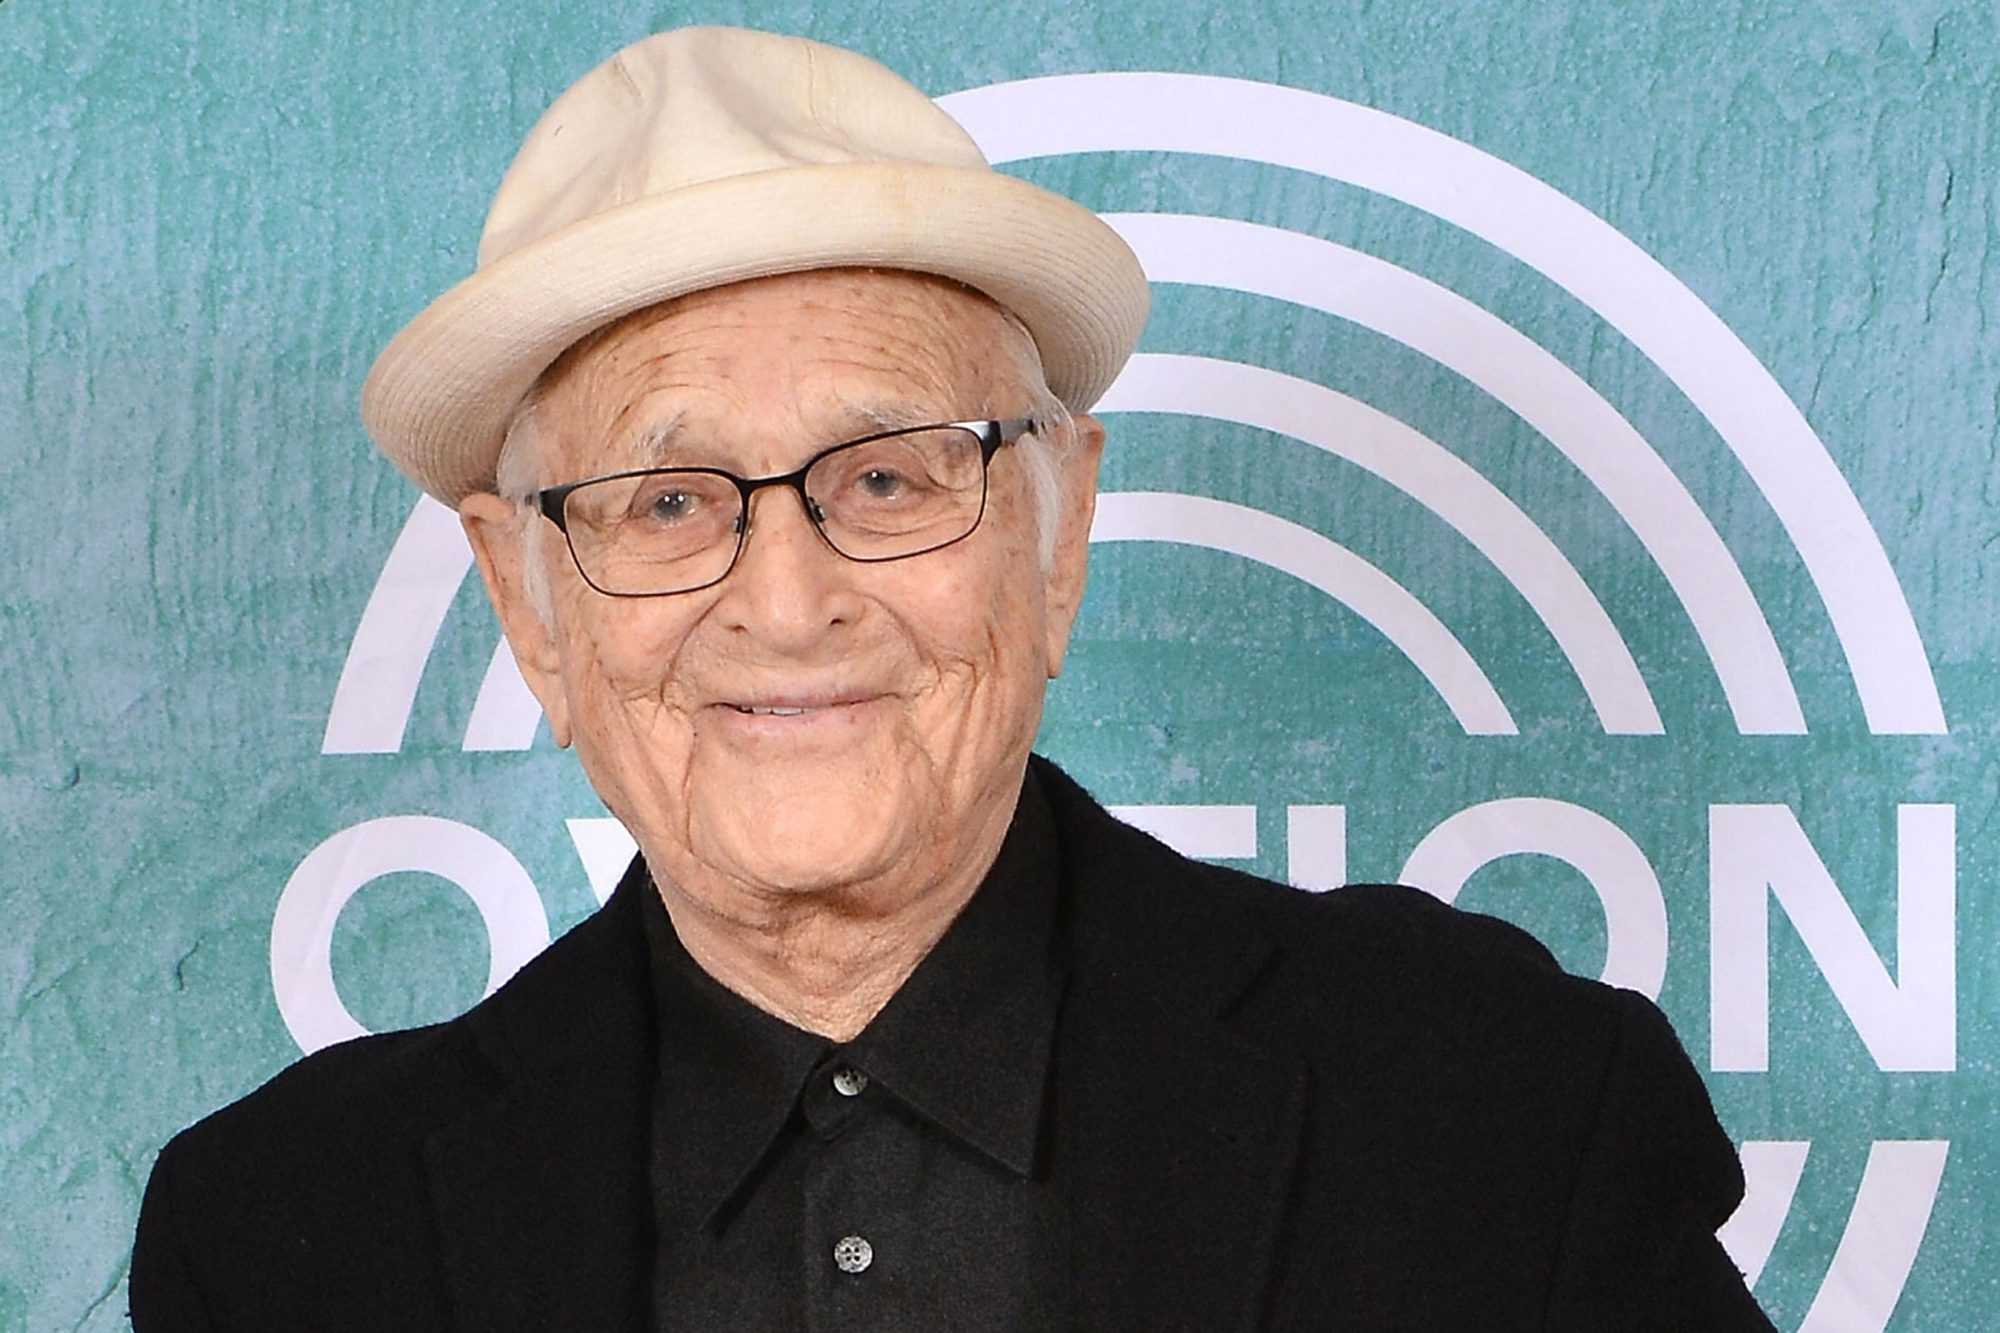 Ovation Kicks Off 2016 Winter TCA Tour By Introducing Three Series Featuring Rachel Hunter, Reza Aslan, Norman Lear And Yannick Bisson